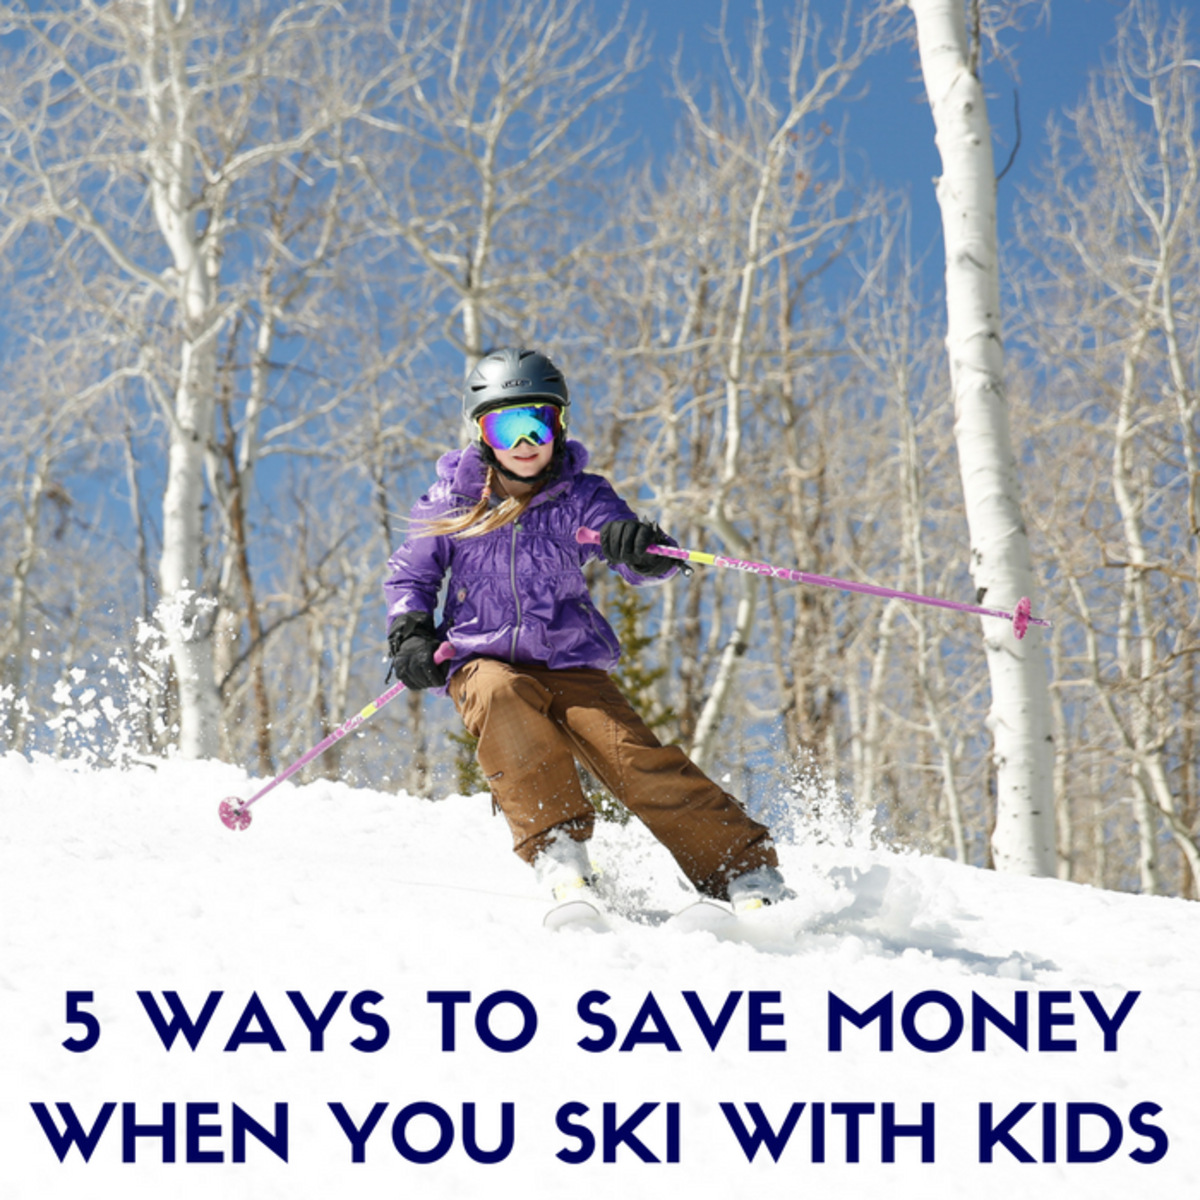 Five More Ways to Save Money When you Ski With Kids